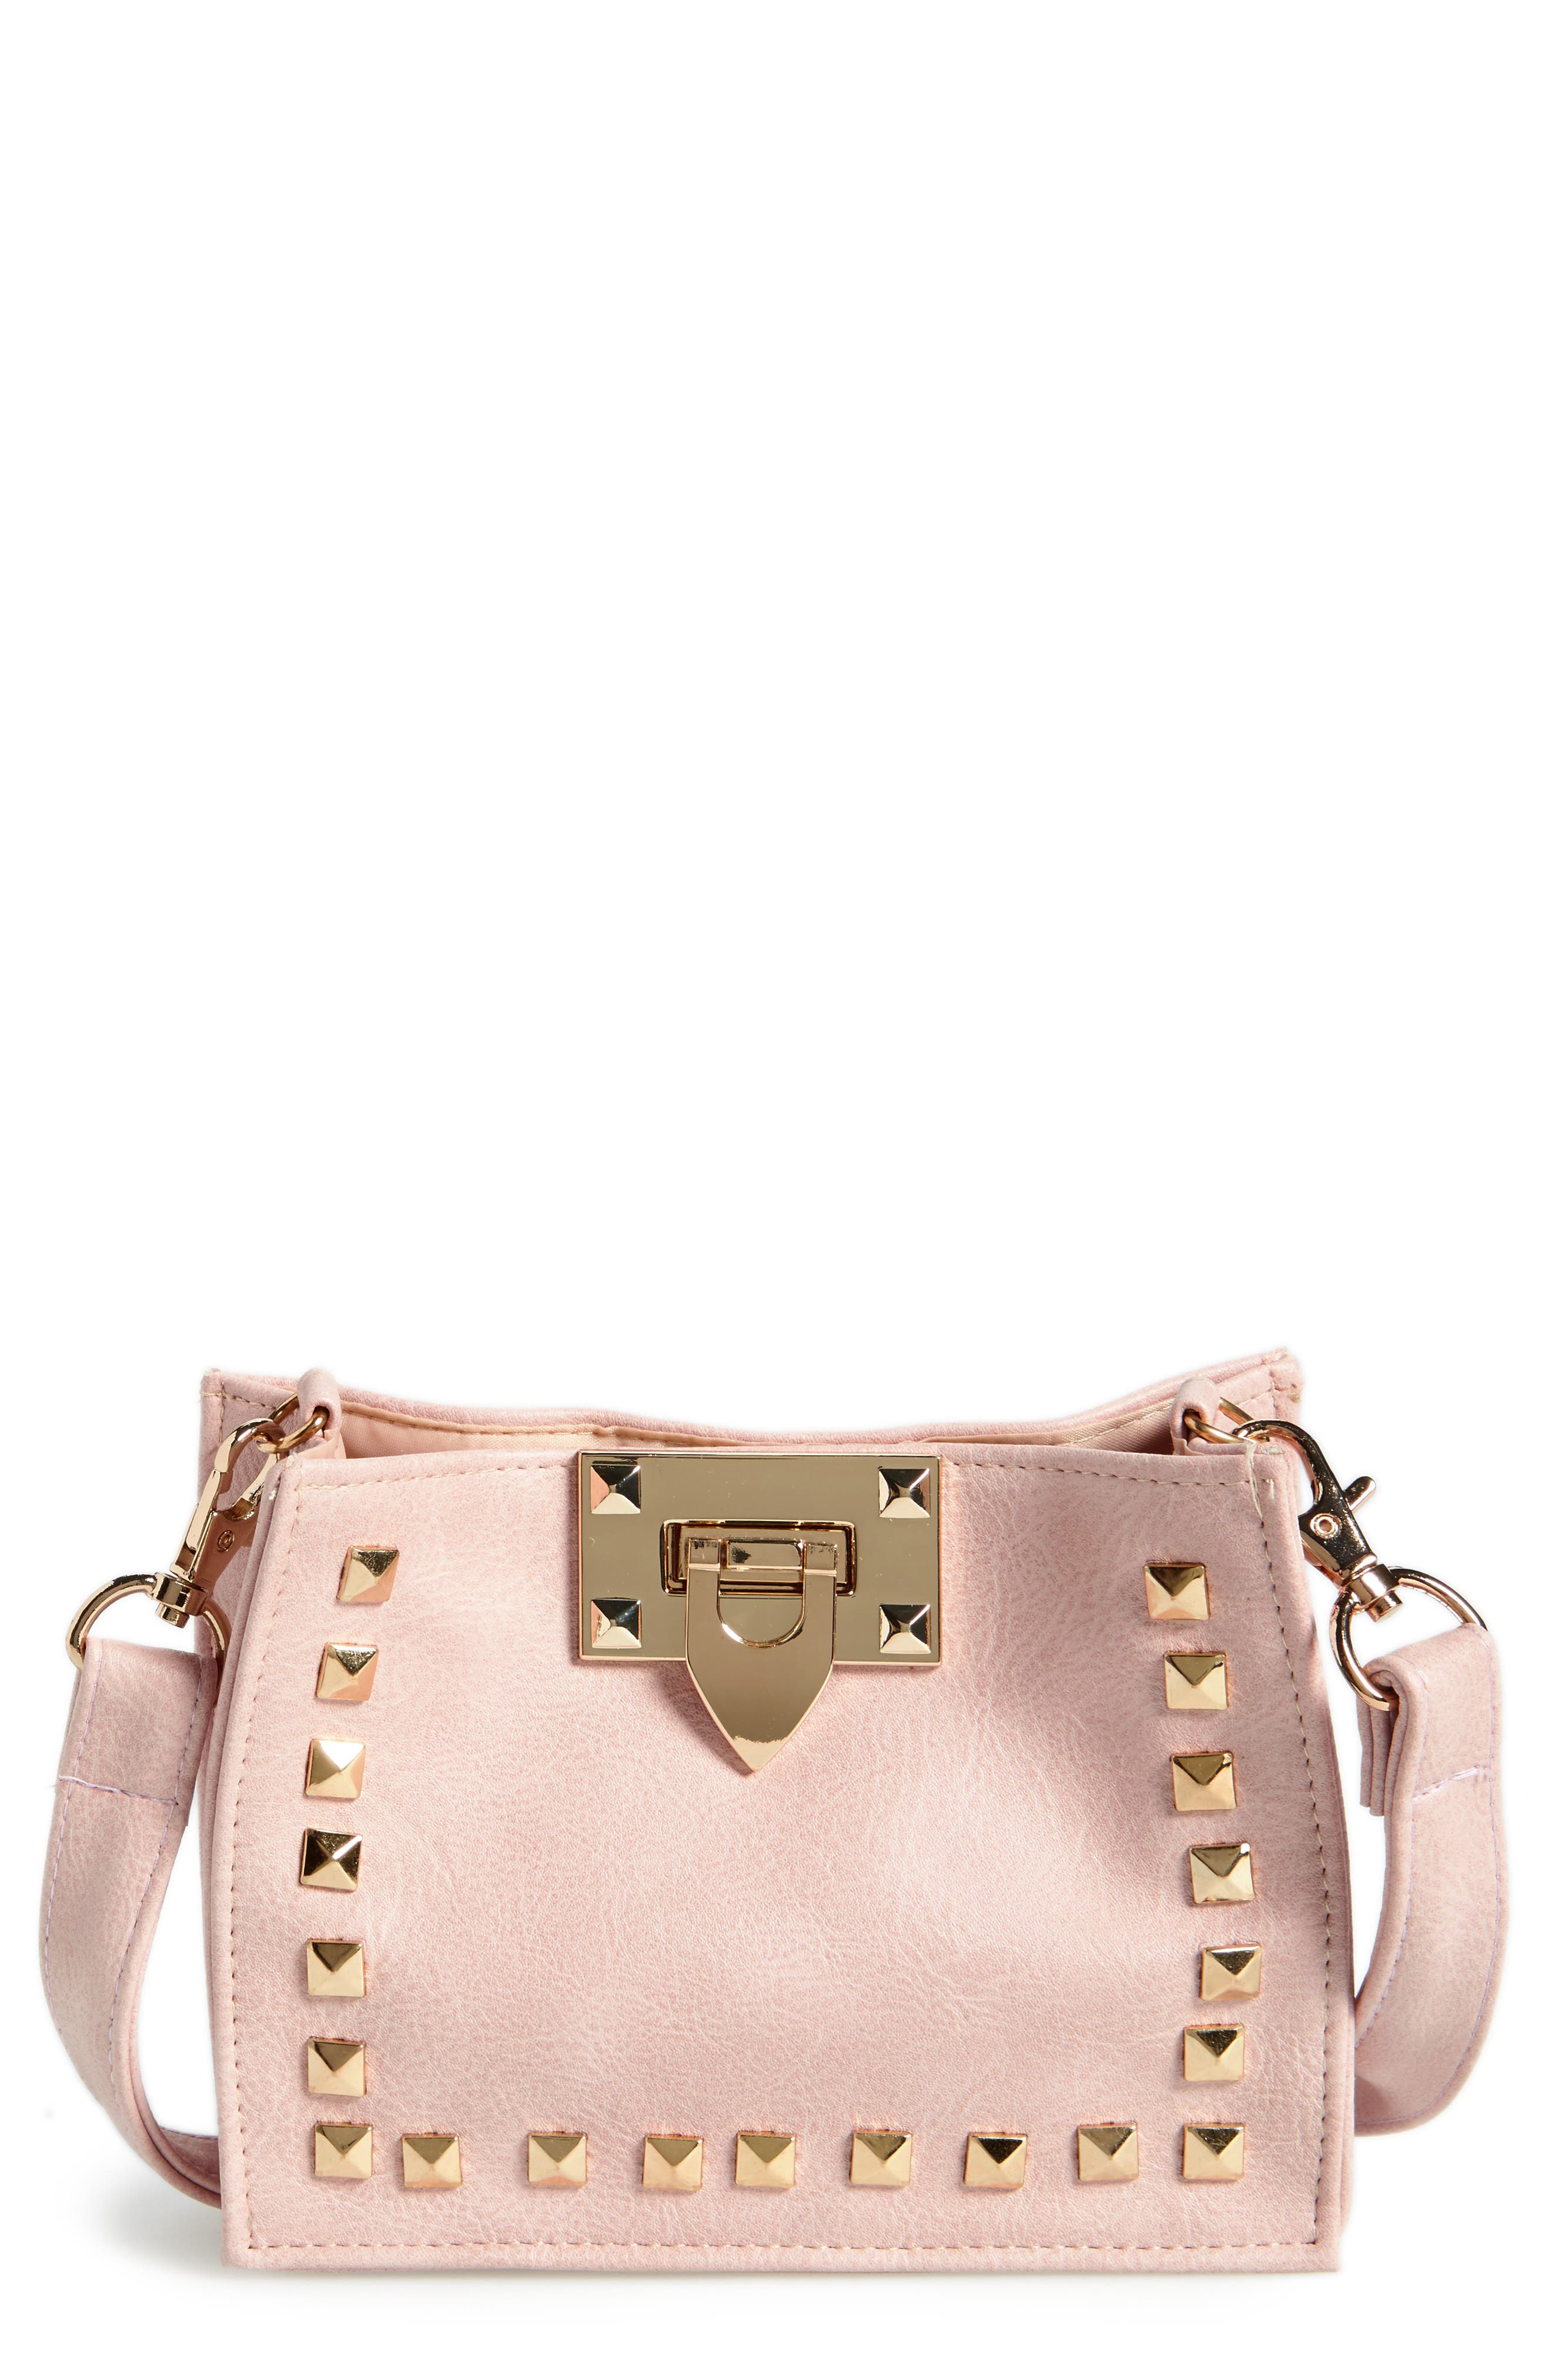 CAPELLI OF NEW YORK Studded Faux Leather Crossbody Bag